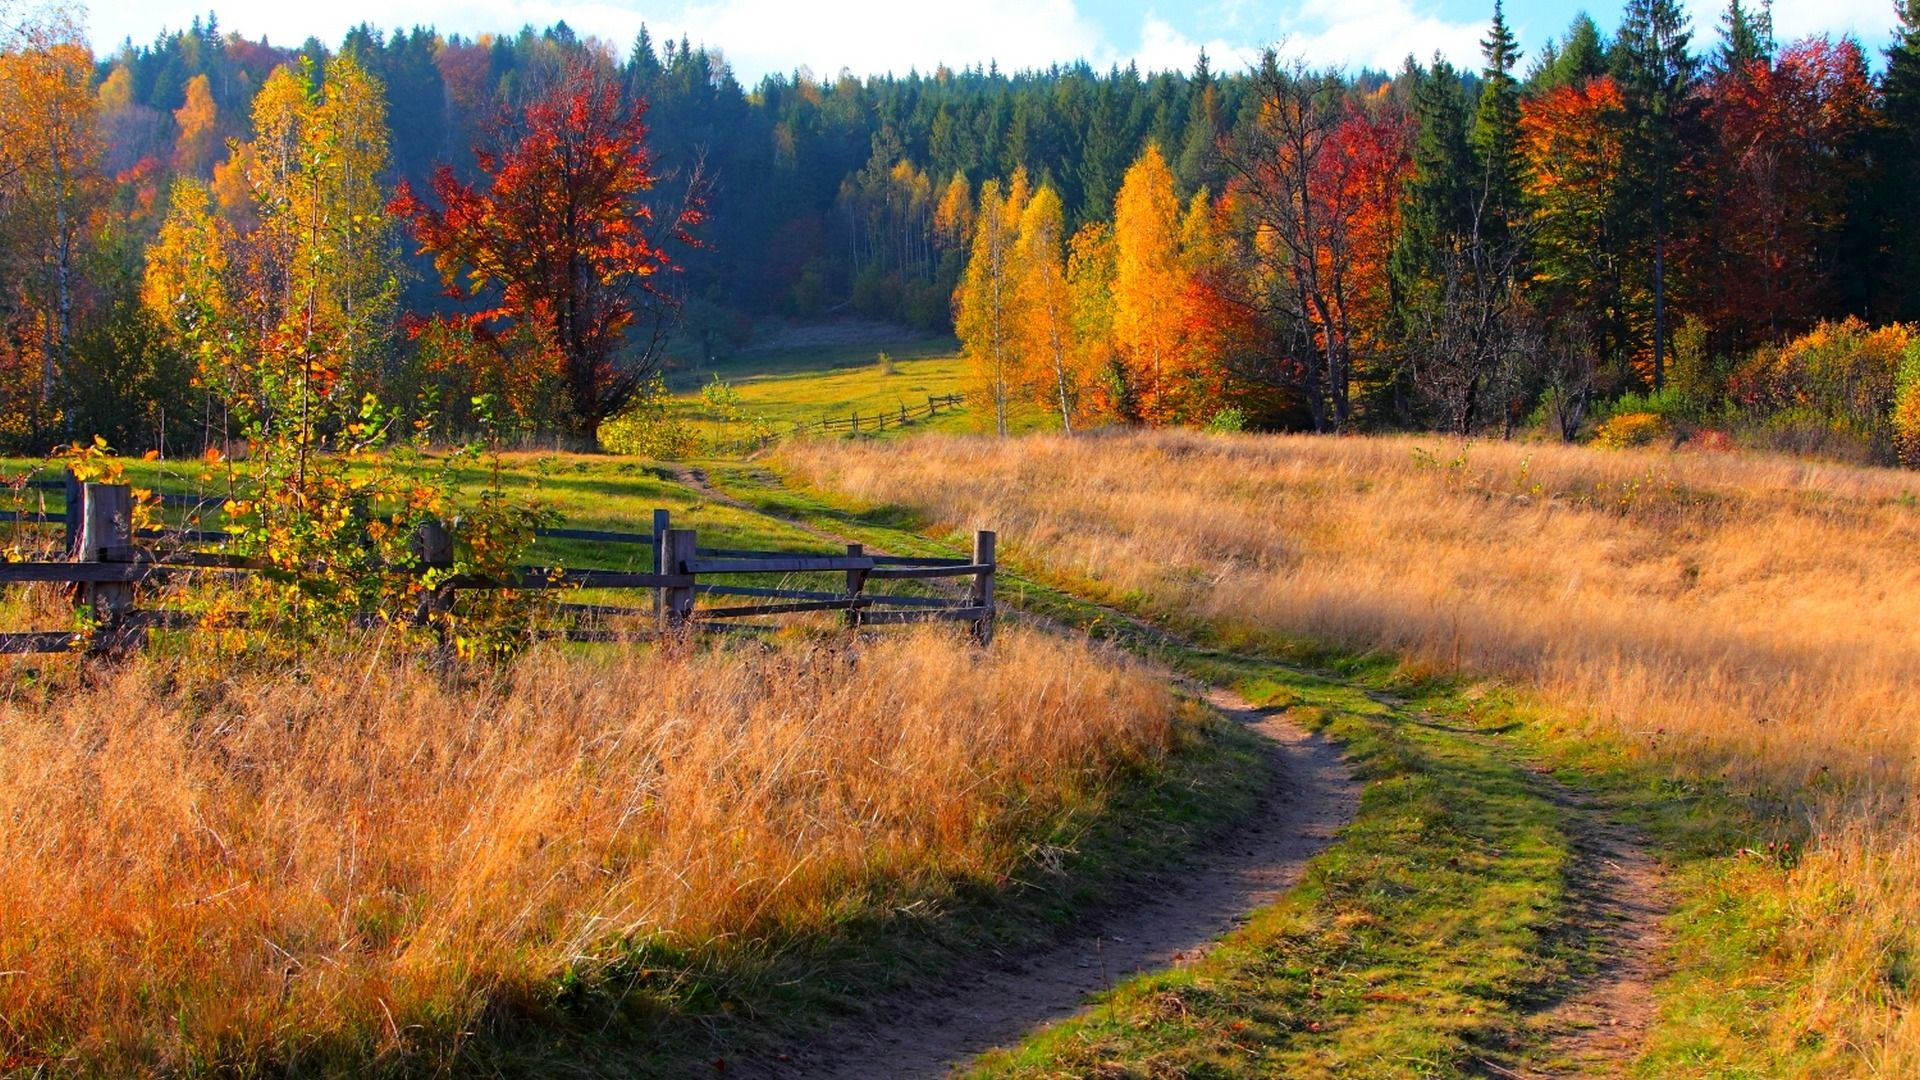 Download Wallpaper Road Autumn Forest The Sky Grass Leaves Trees Mountains Nature Colors Colorful Grass Forest Landscape Background Images Nature Autumn grass field mountain forest trees